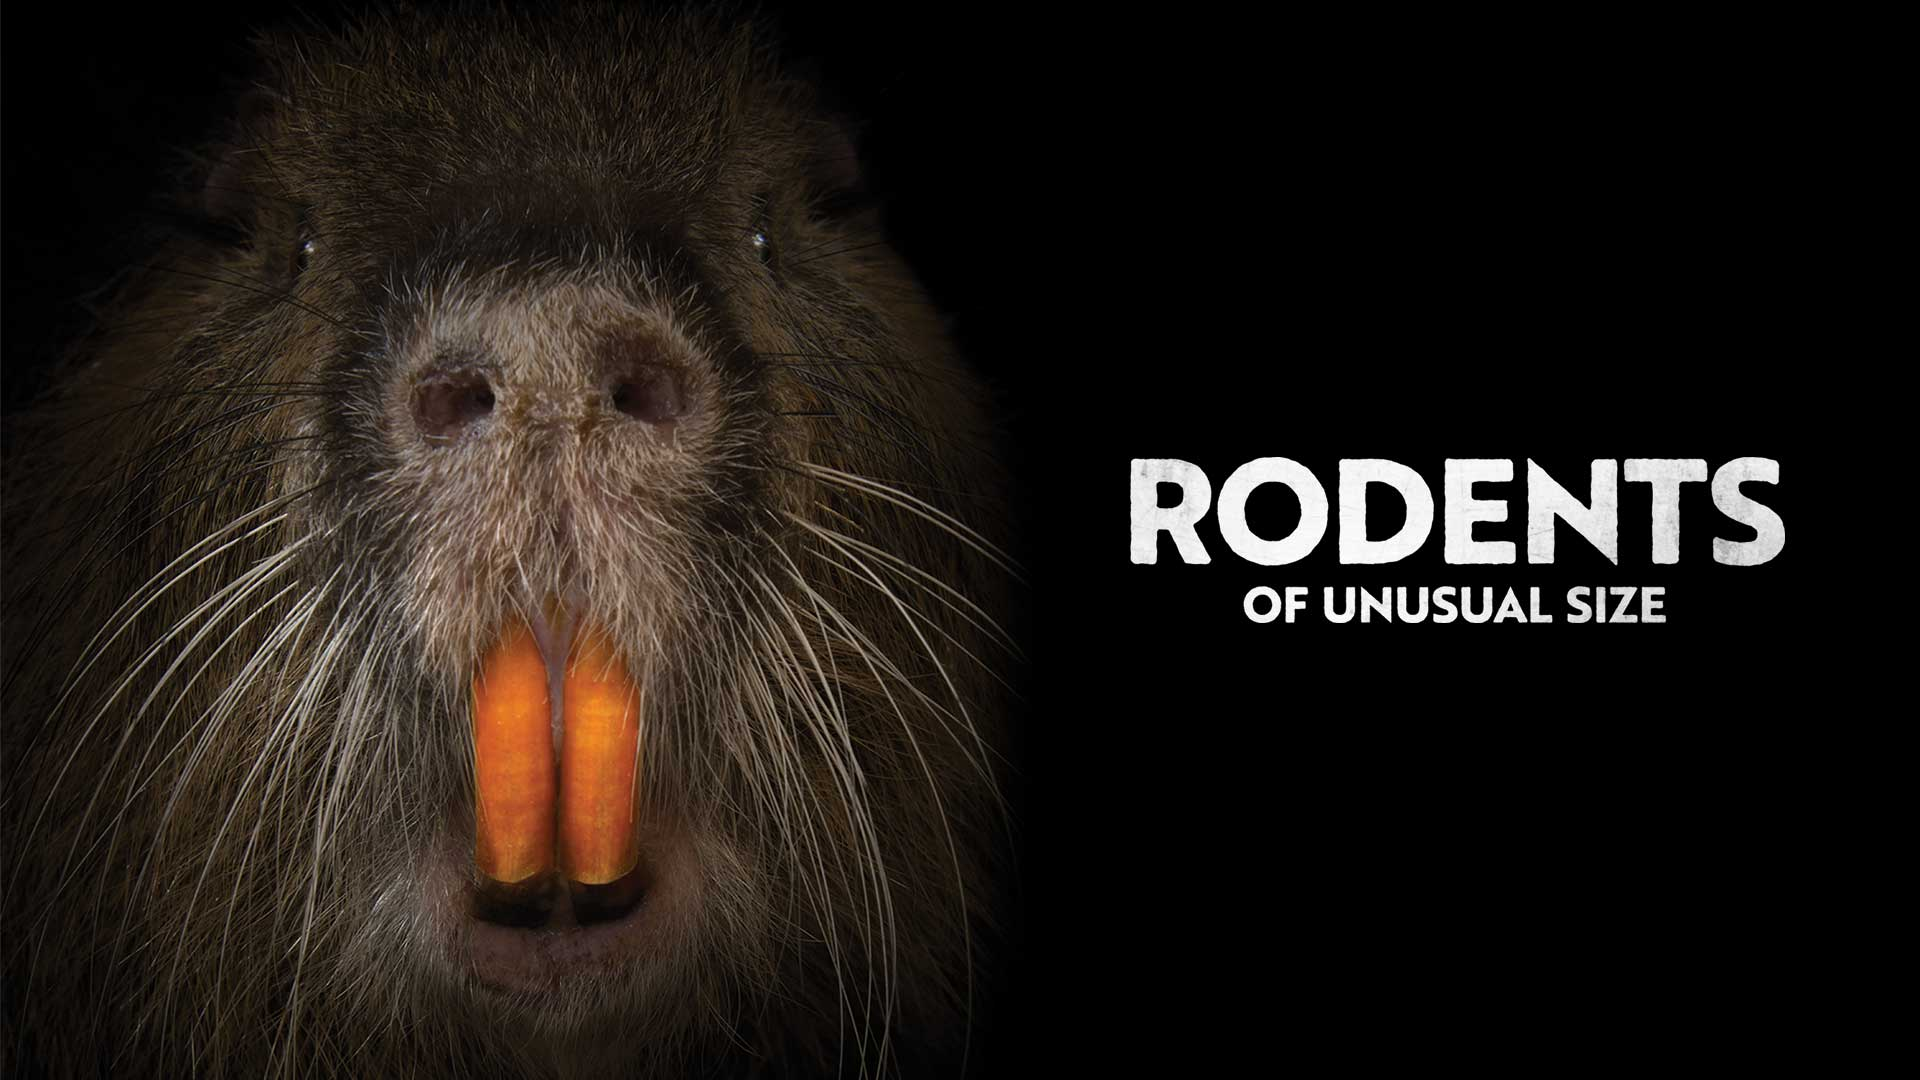 Rodents of Unusual Size - image